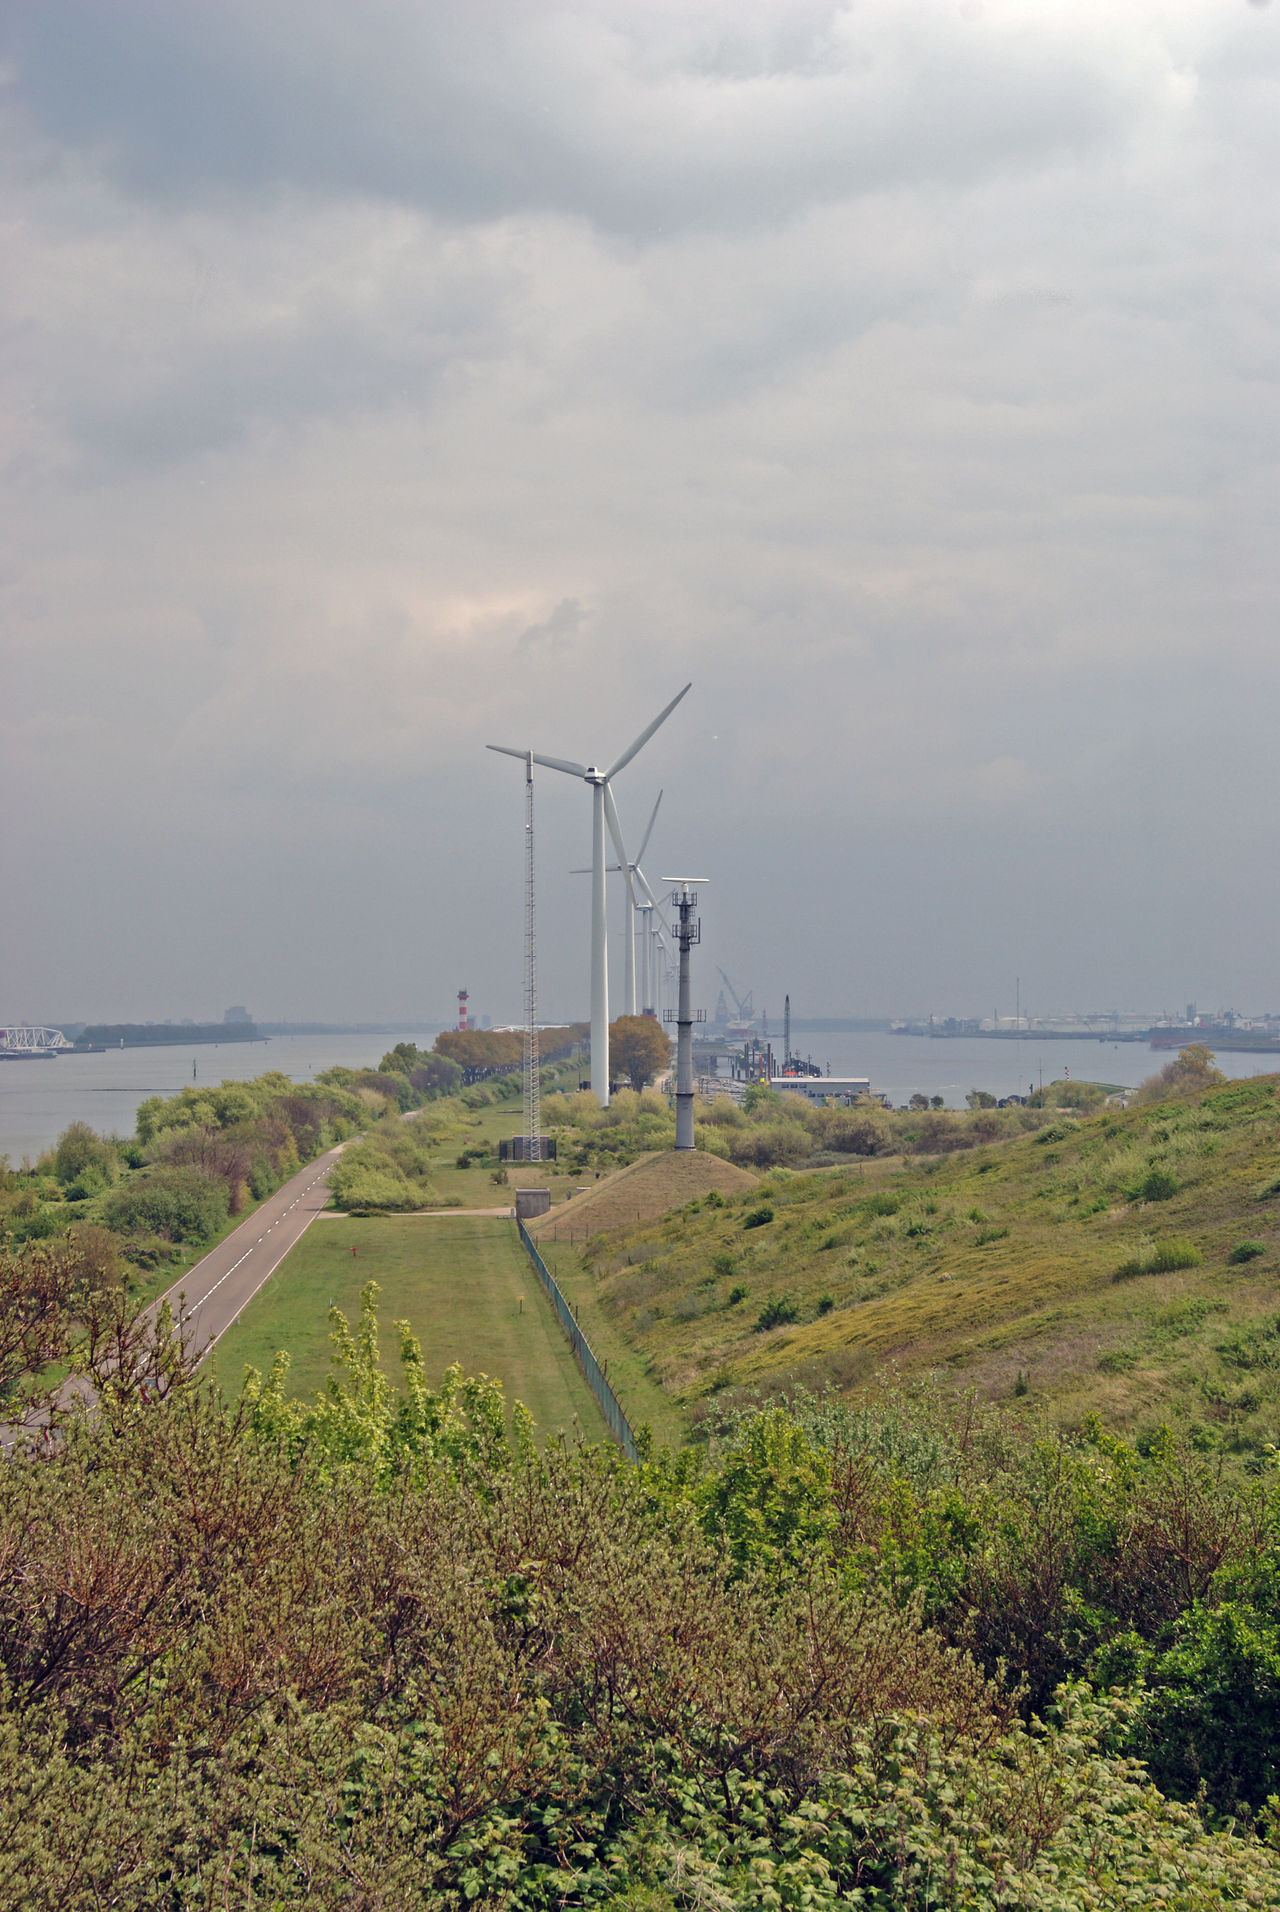 Alternative Energy Beauty In Nature Cloud - Sky Day Field Fuel And Power Generation Grass Horizon Over Water Industrial Windmill Landscape Nature No People Outdoors OverviewPoint Rotterdam Harbor Rotterdam Haven Rozenburg Rural Scene Scenics Sky Water Wind Power Wind Turbine Windmill